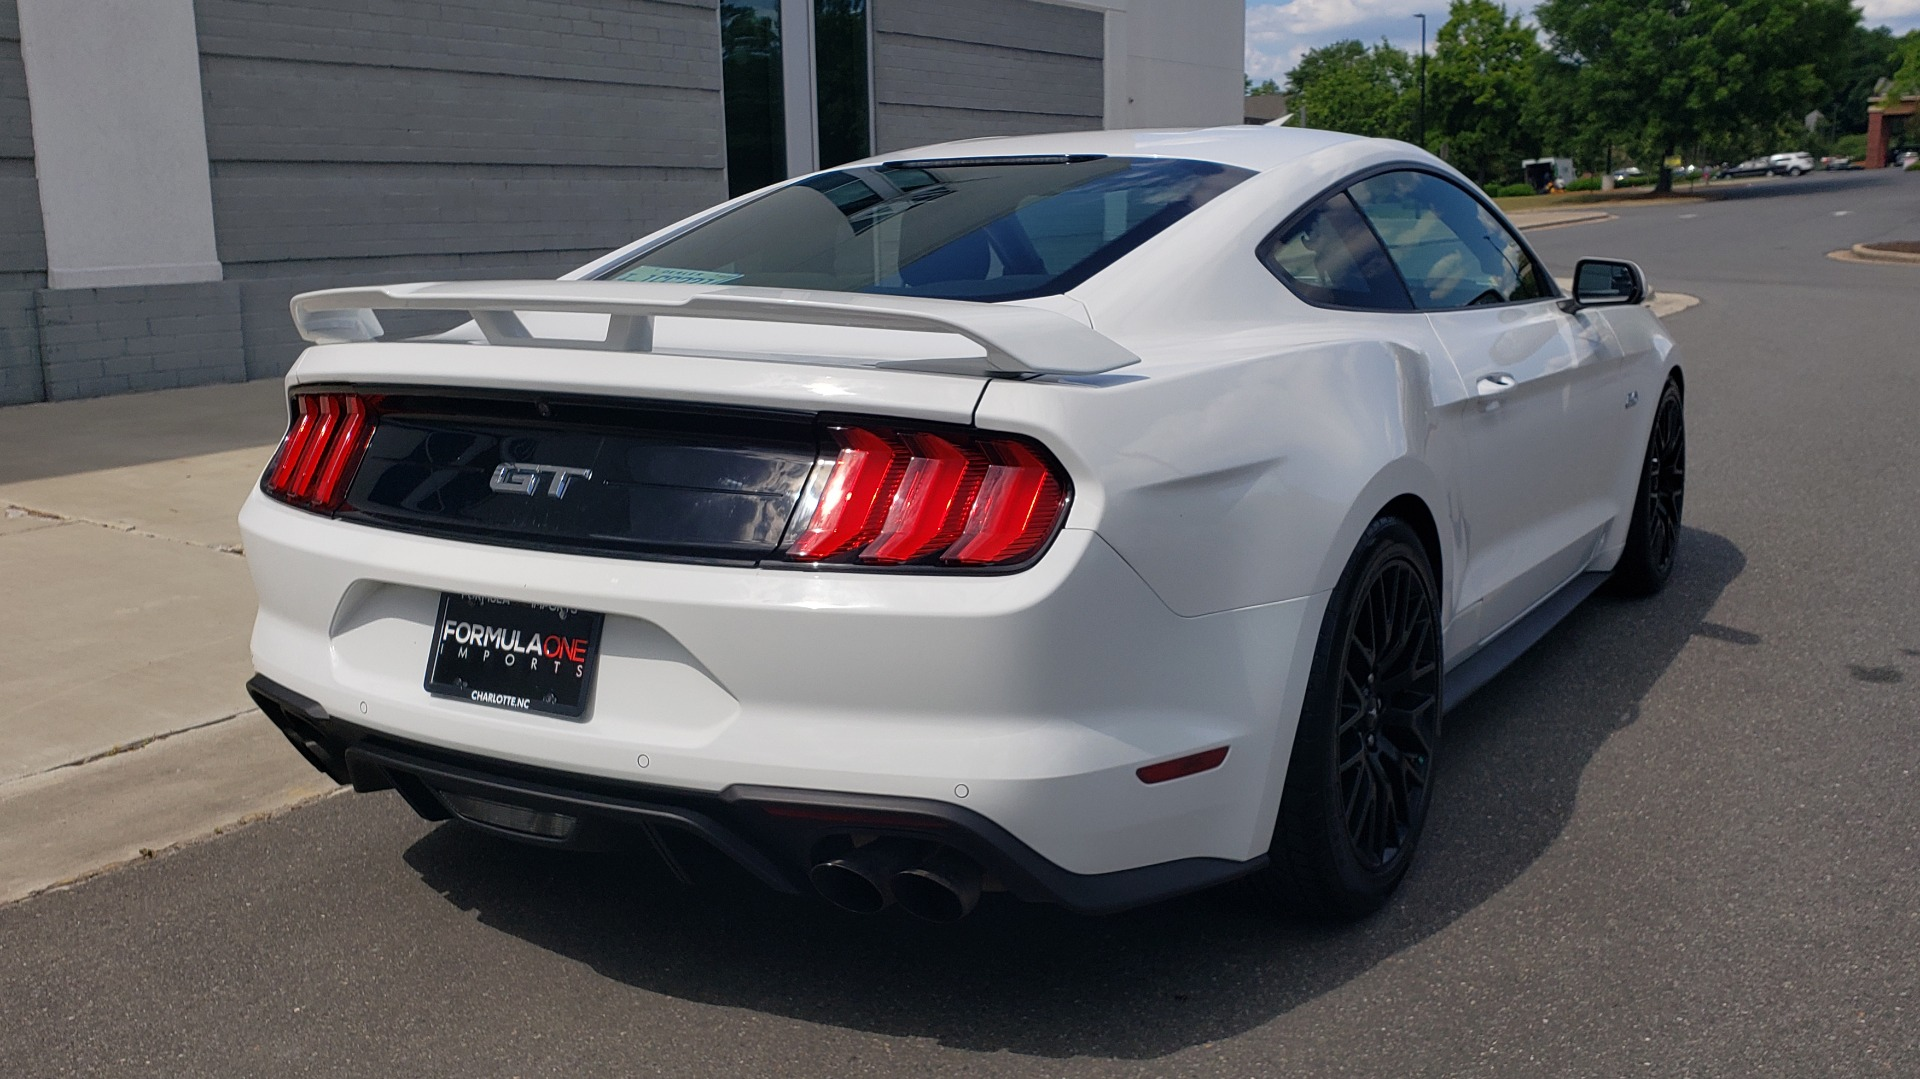 Used 2018 Ford MUSTANG GT COUPE / 5.0L V8 / AUTO / PERF PKG / REARVIEW / 19IN WHLS for sale Sold at Formula Imports in Charlotte NC 28227 2